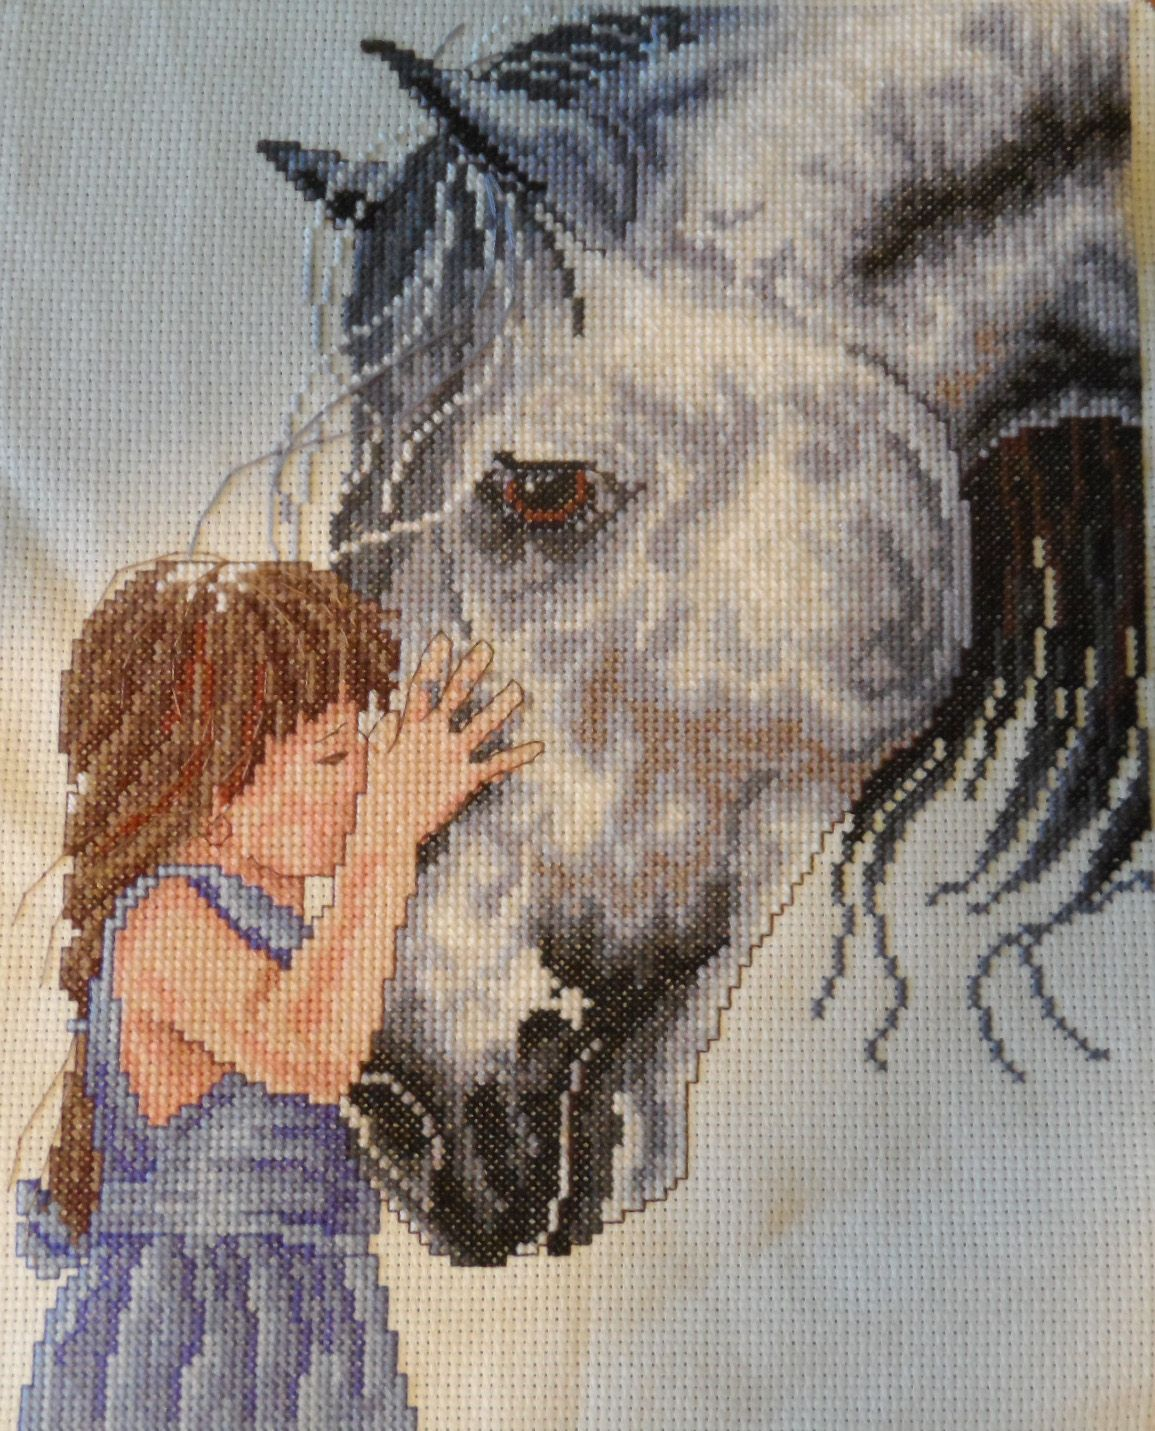 Finished Cross Stitch - Little Girl kissing her horse  | My Cross